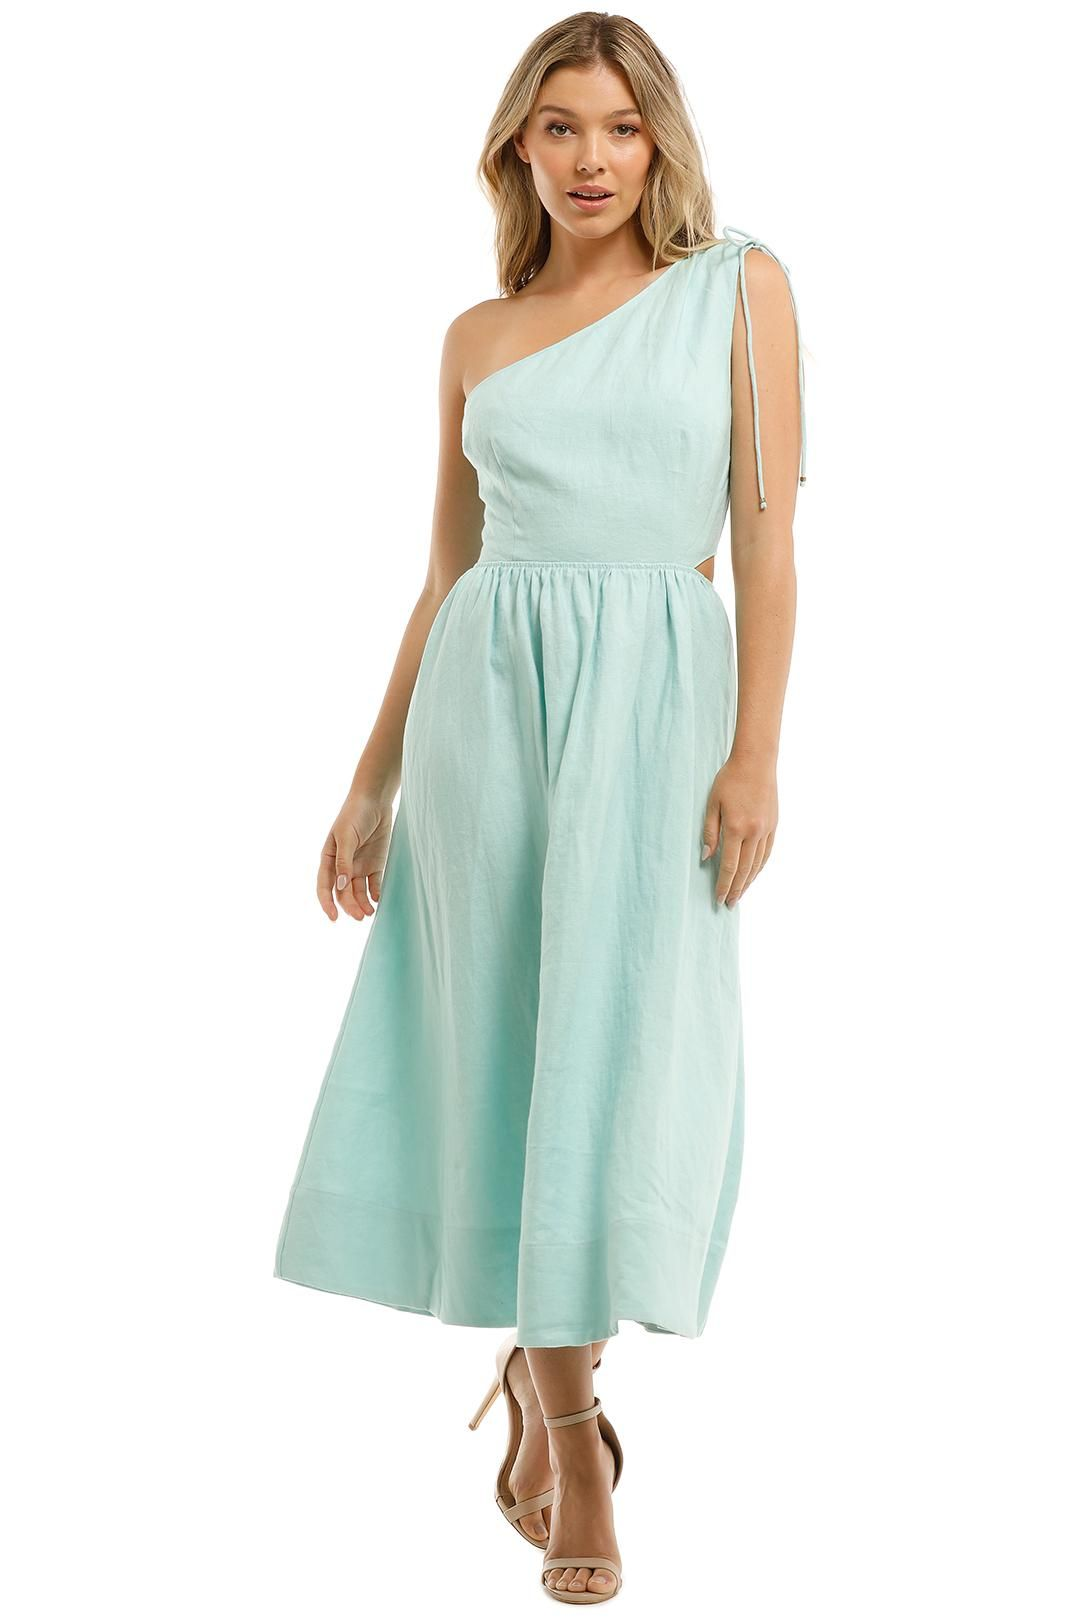 Witchery Asymmetric Cutout Dress Mint Blue Midi